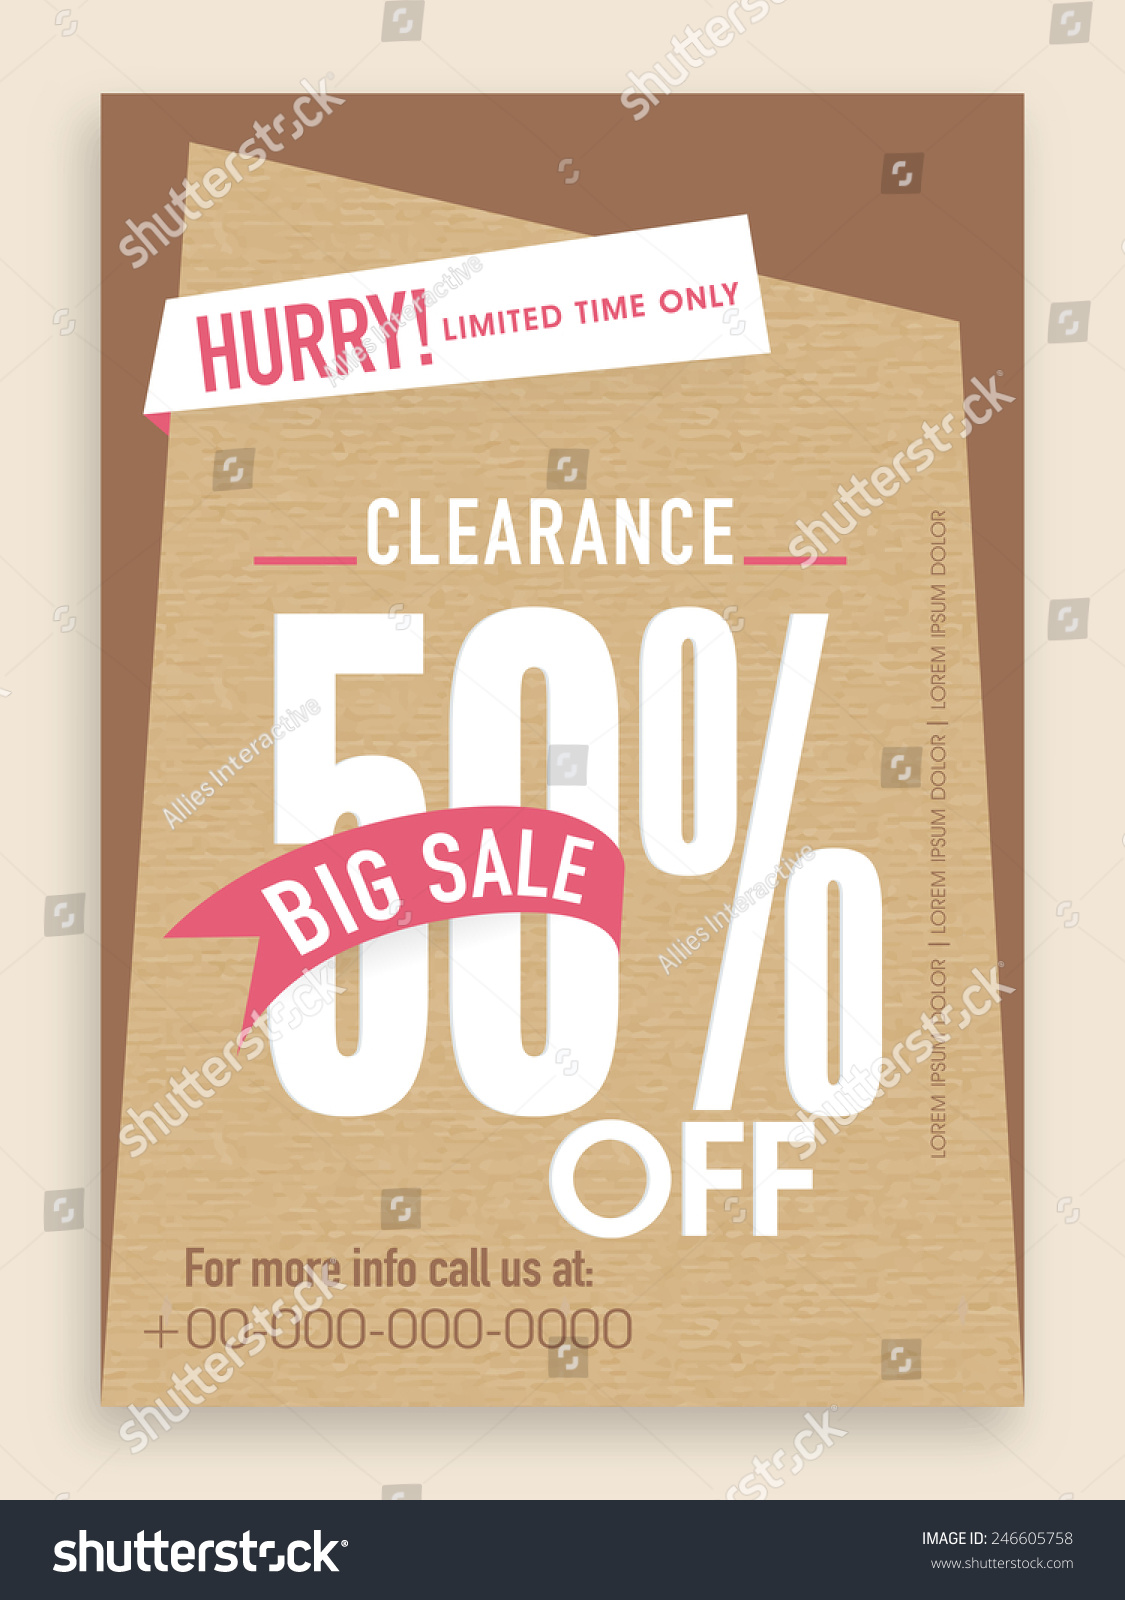 photo s flyer template images clearance flyer template banner design stock vector 246605758 stock vector clearance flyer template or